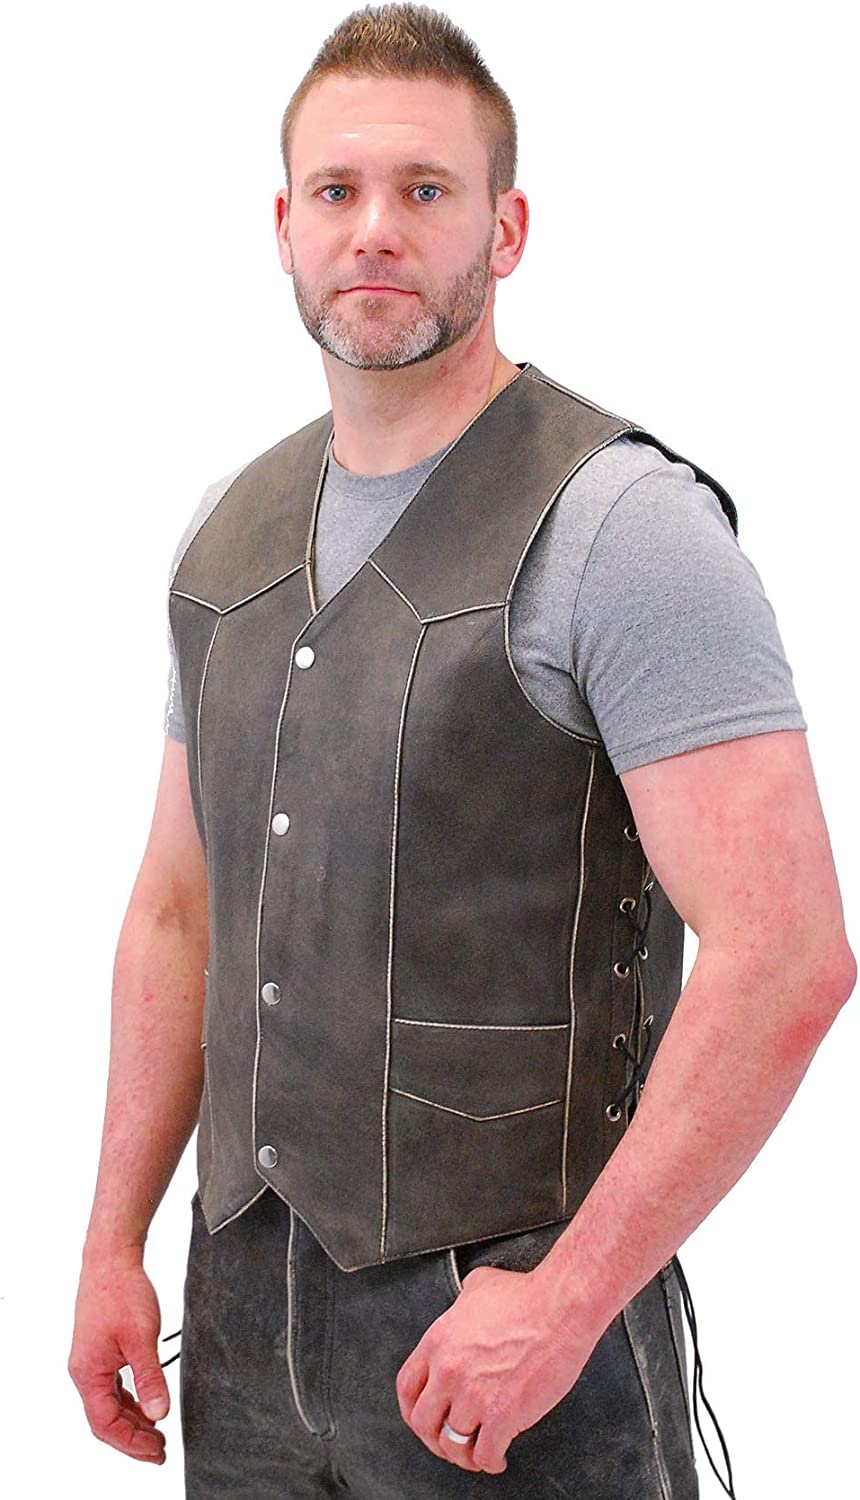 Jamin' Leather - Vintage Brown Side Lace Leather Biker Vest w/CCW Pockets #VMA273LDN